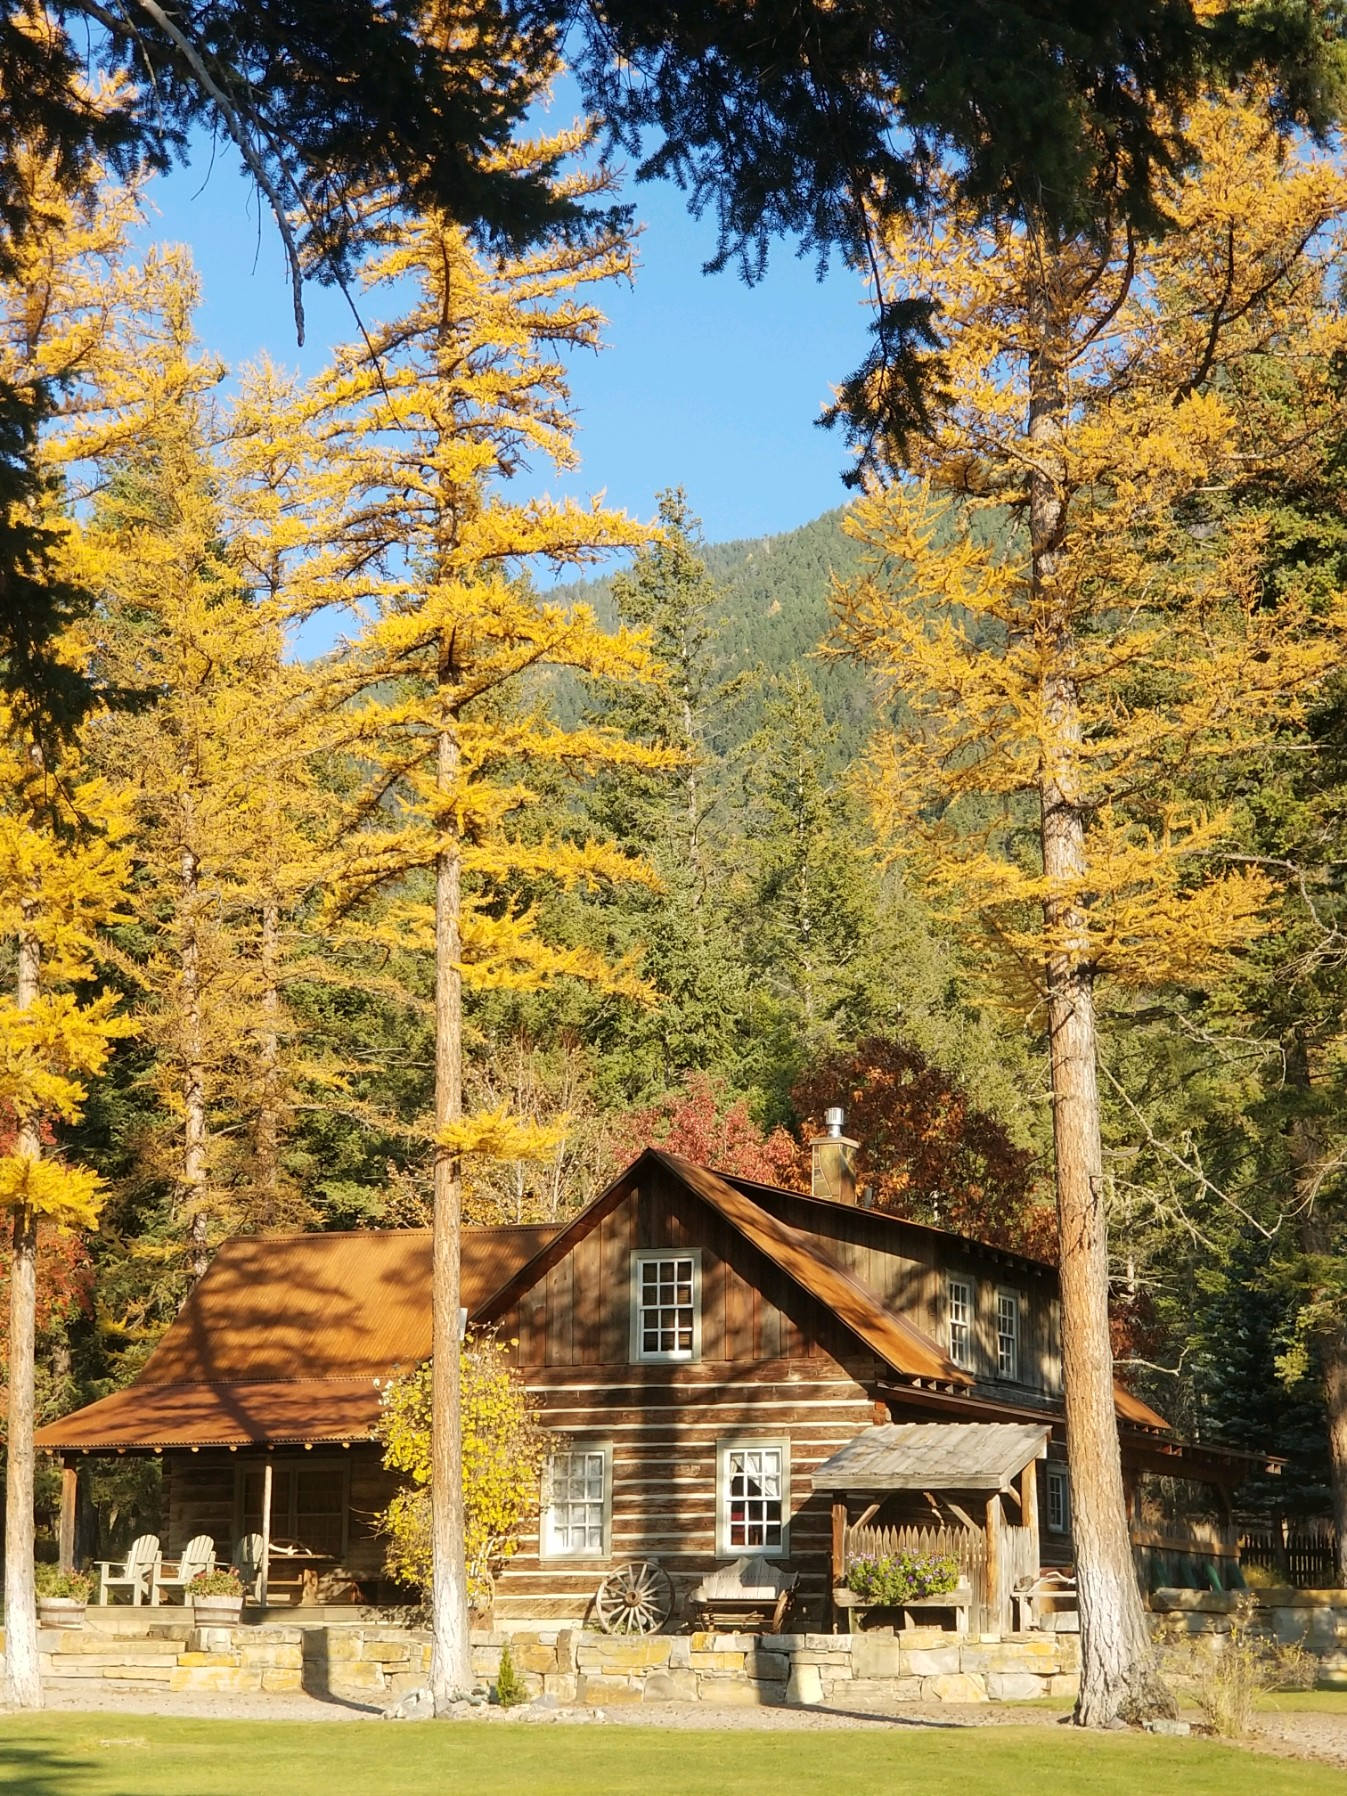 The Weatherwood Homestead is available to Glacier National Park guests from May 15 - October 15.